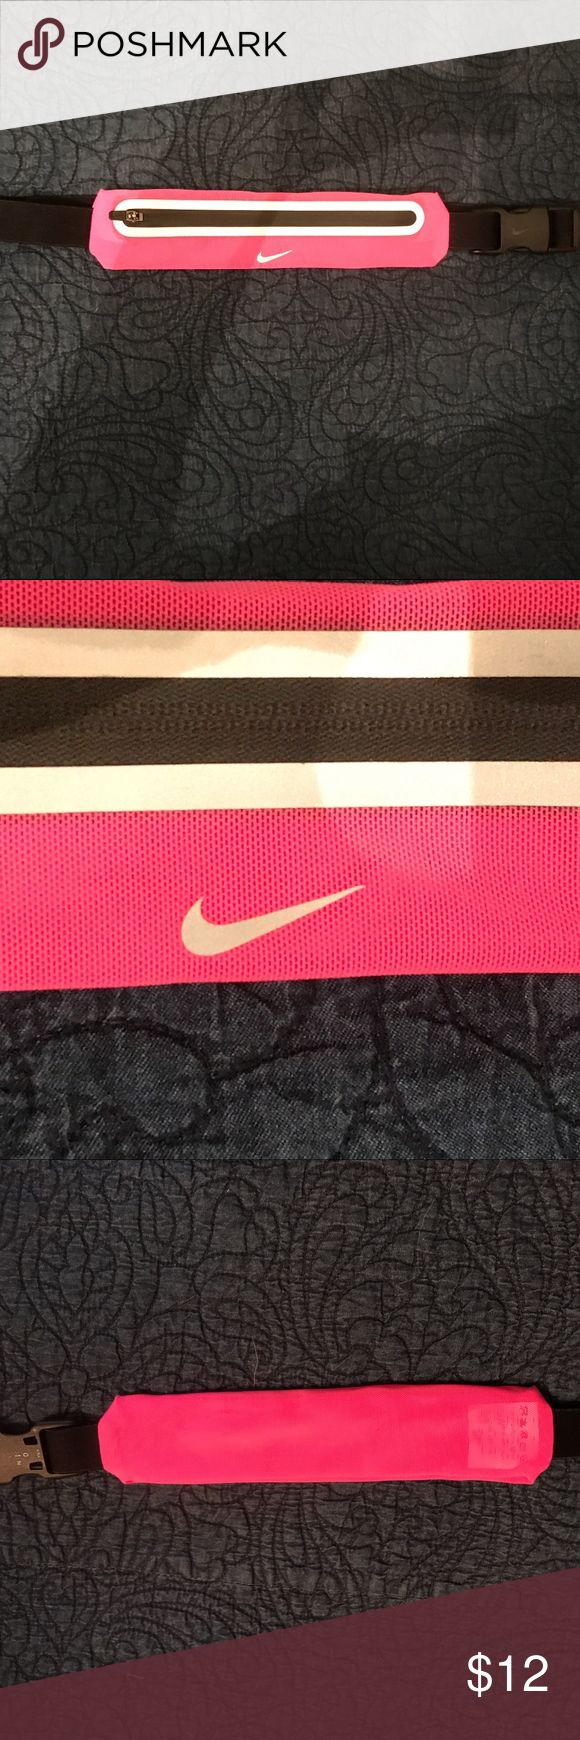 Nike Expandable Running Lean Waistpack Bright Pink and black. Great for exercising as well as travel (keeping money, credit cards, etc hidden). Small scuffs on back side shown in photo. Good condition.   Expandable stretch mesh fabrication Lightweight, breathable, and waterproof Convenient zip compartment  Secure storage for keys and other small items  Adjustable elastic belt  Fits securely and comfortably High contrast Swoosh, zipper pocket, and tabs Visibility and safety Nike Accessories…